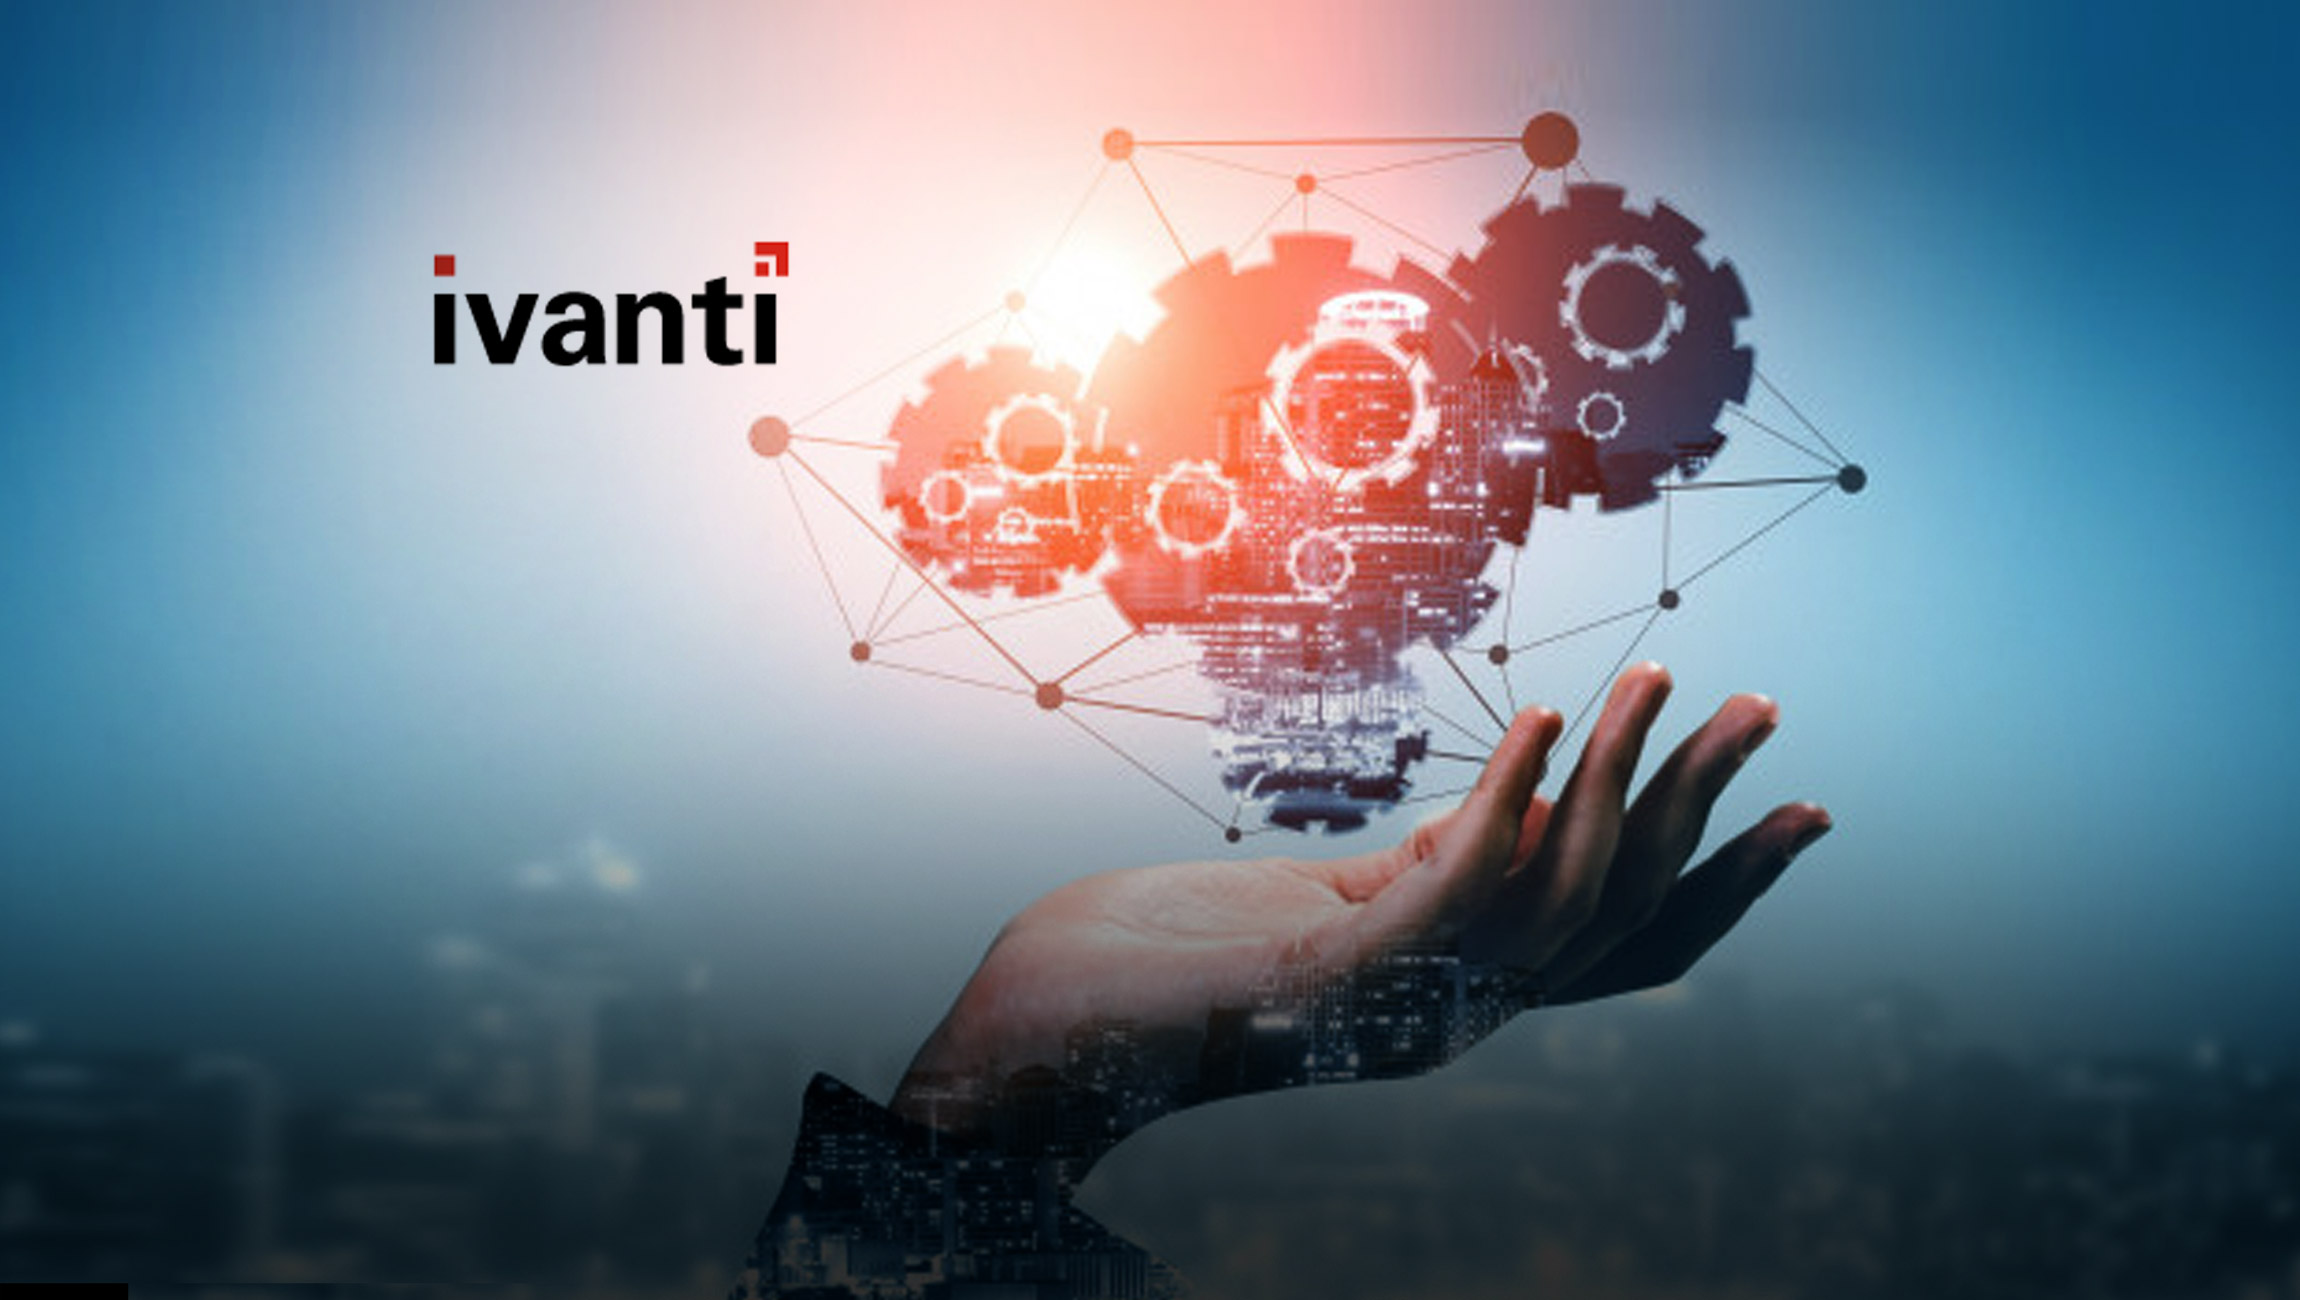 Ivanti Positioned as a Leader in the Gartner Magic Quadrant for IT Service Management Tools